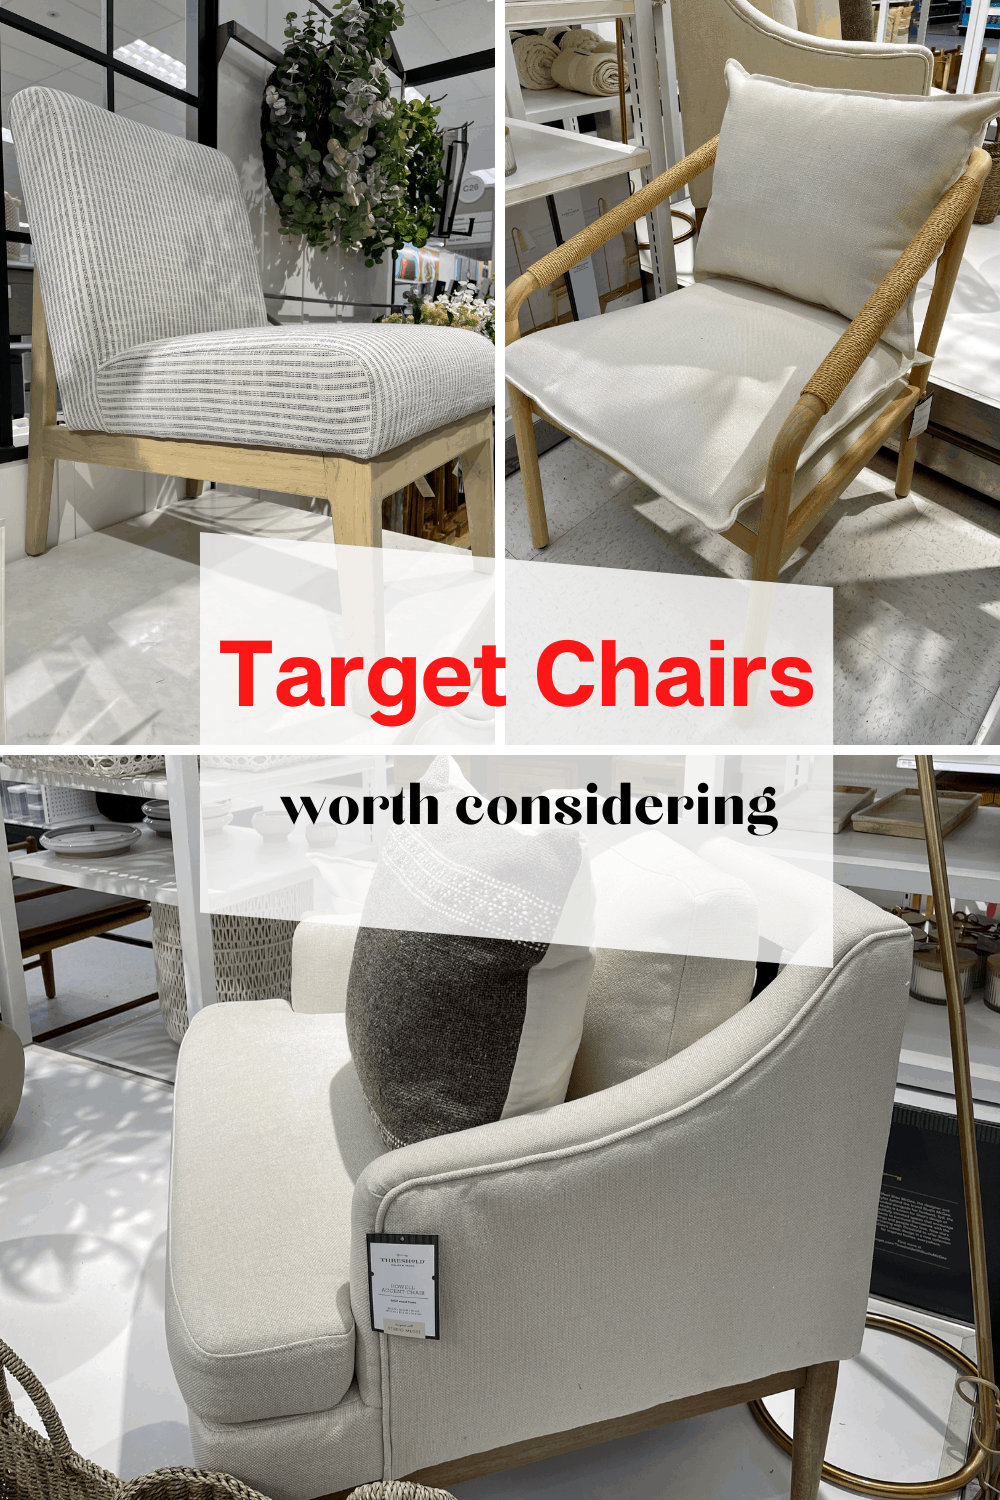 Comfortable Target Chairs